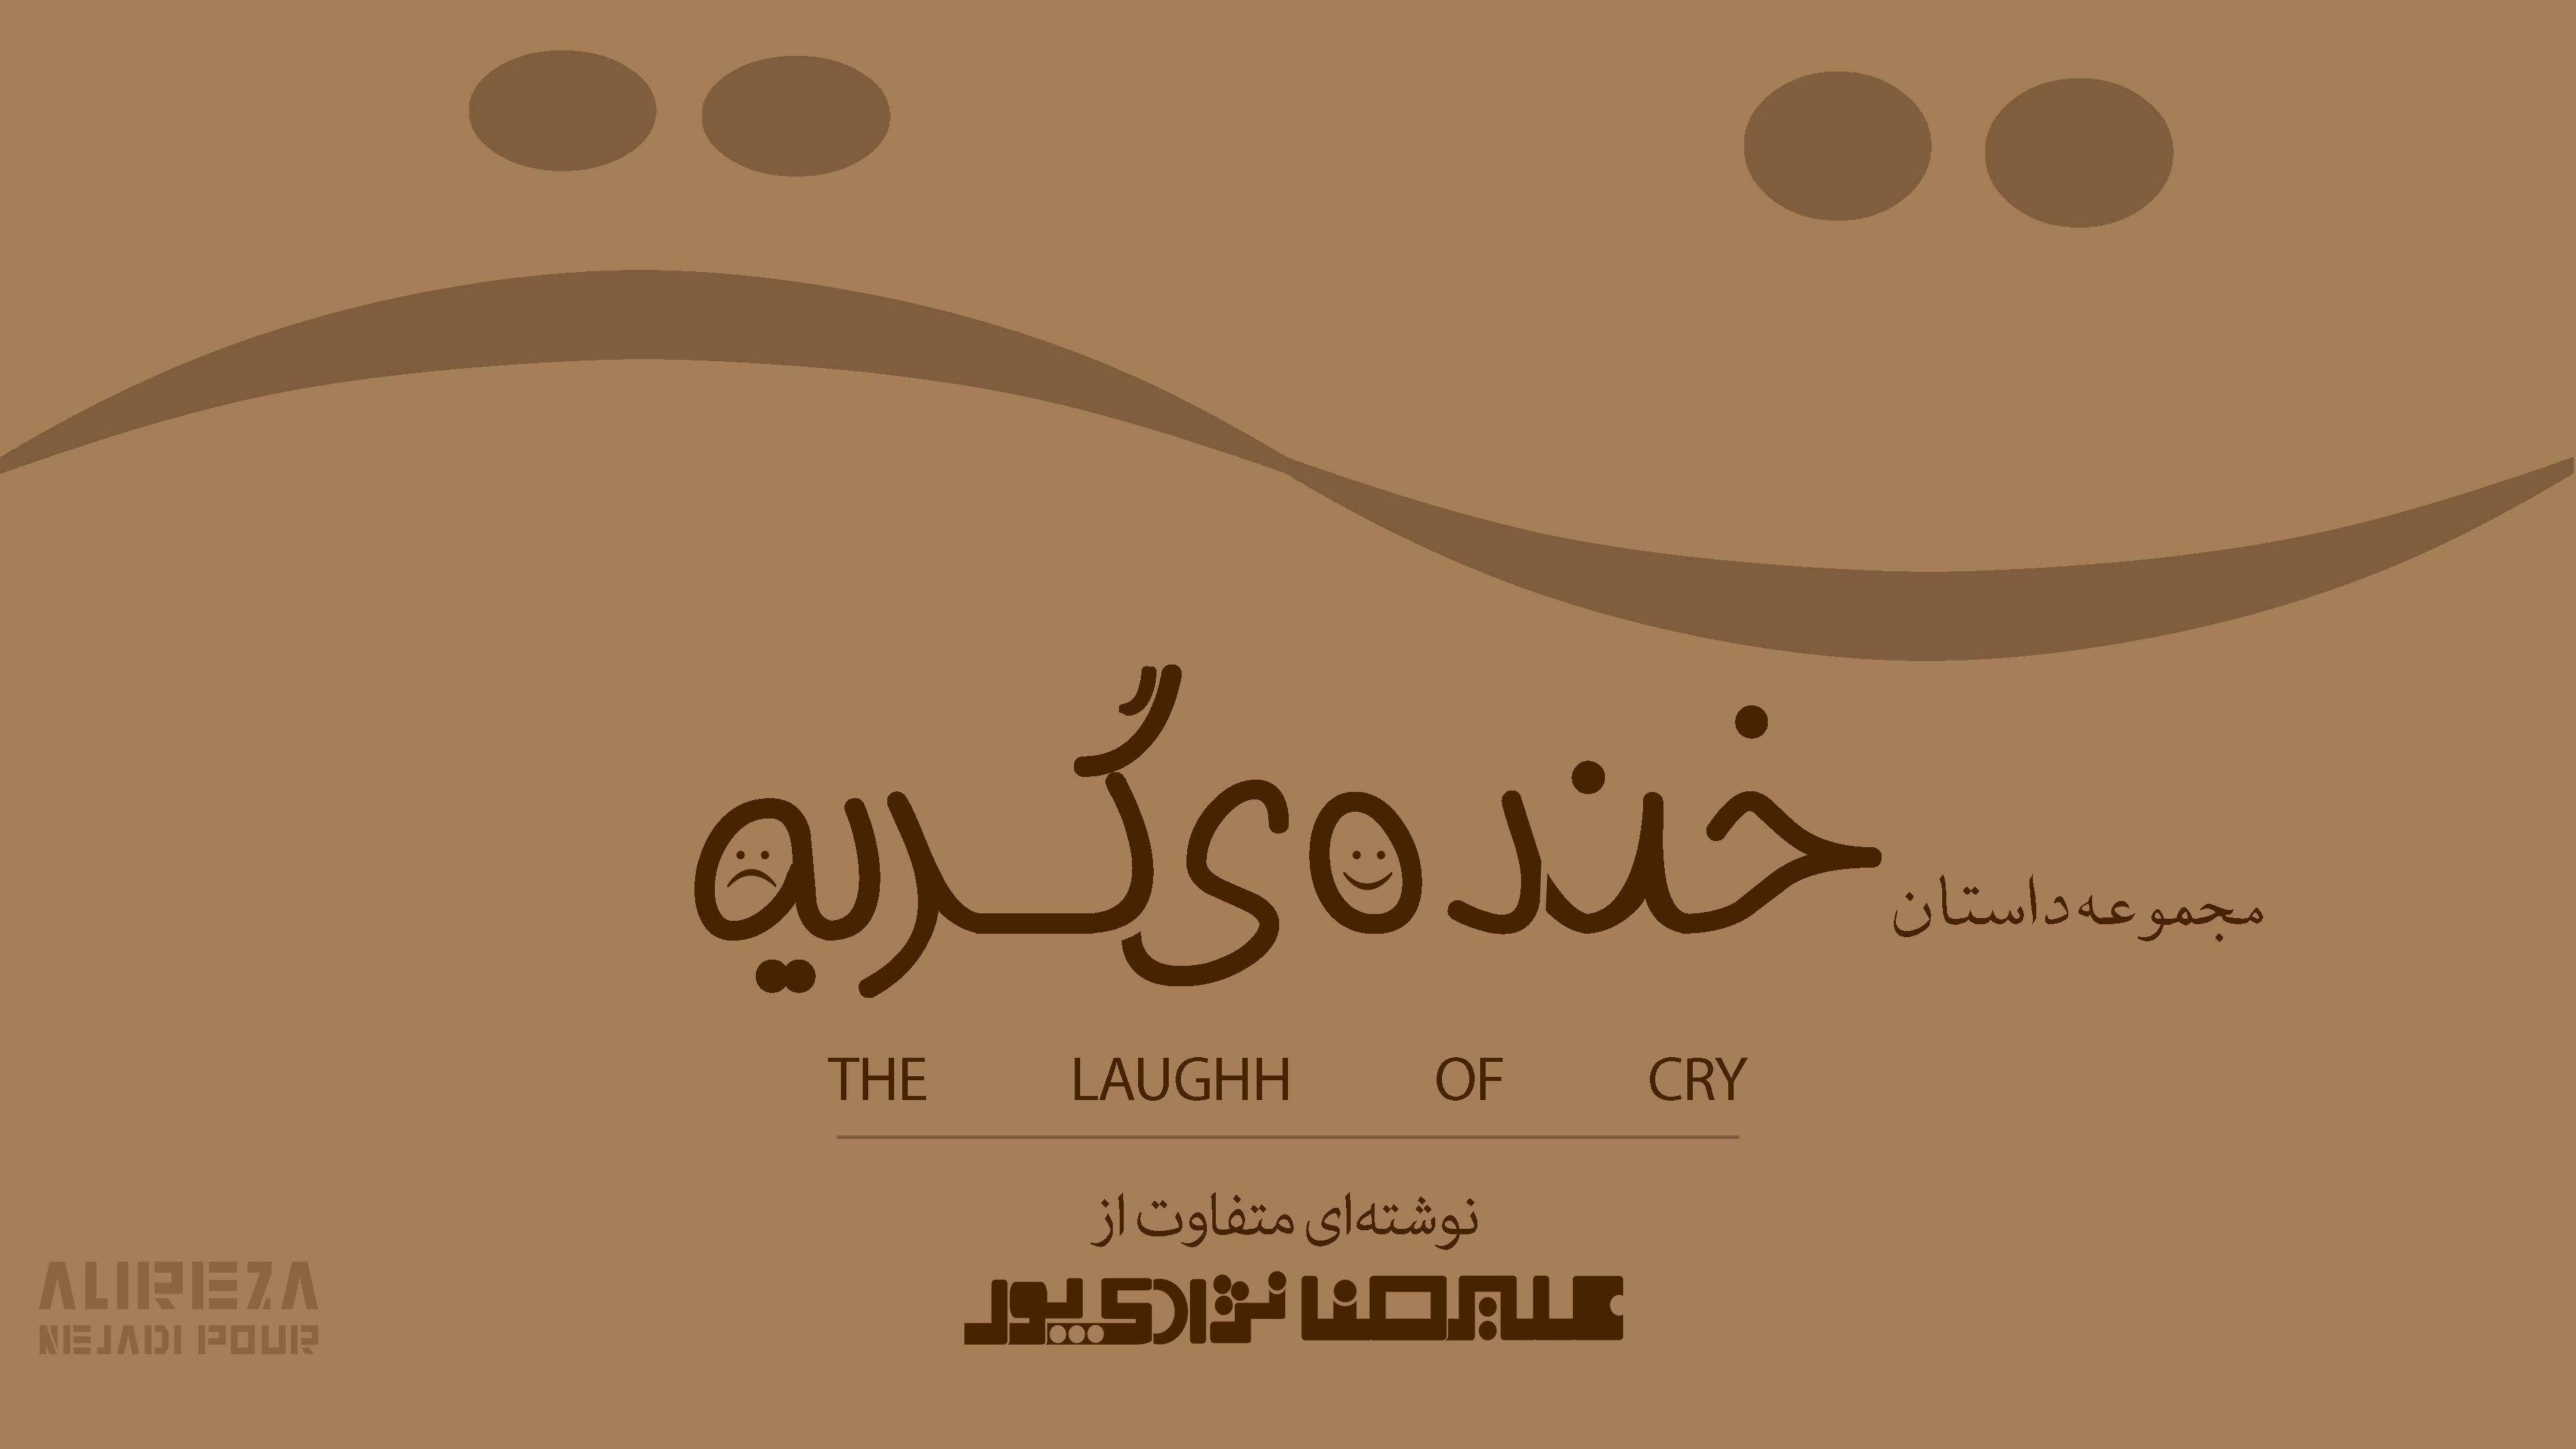 the laugh of cry